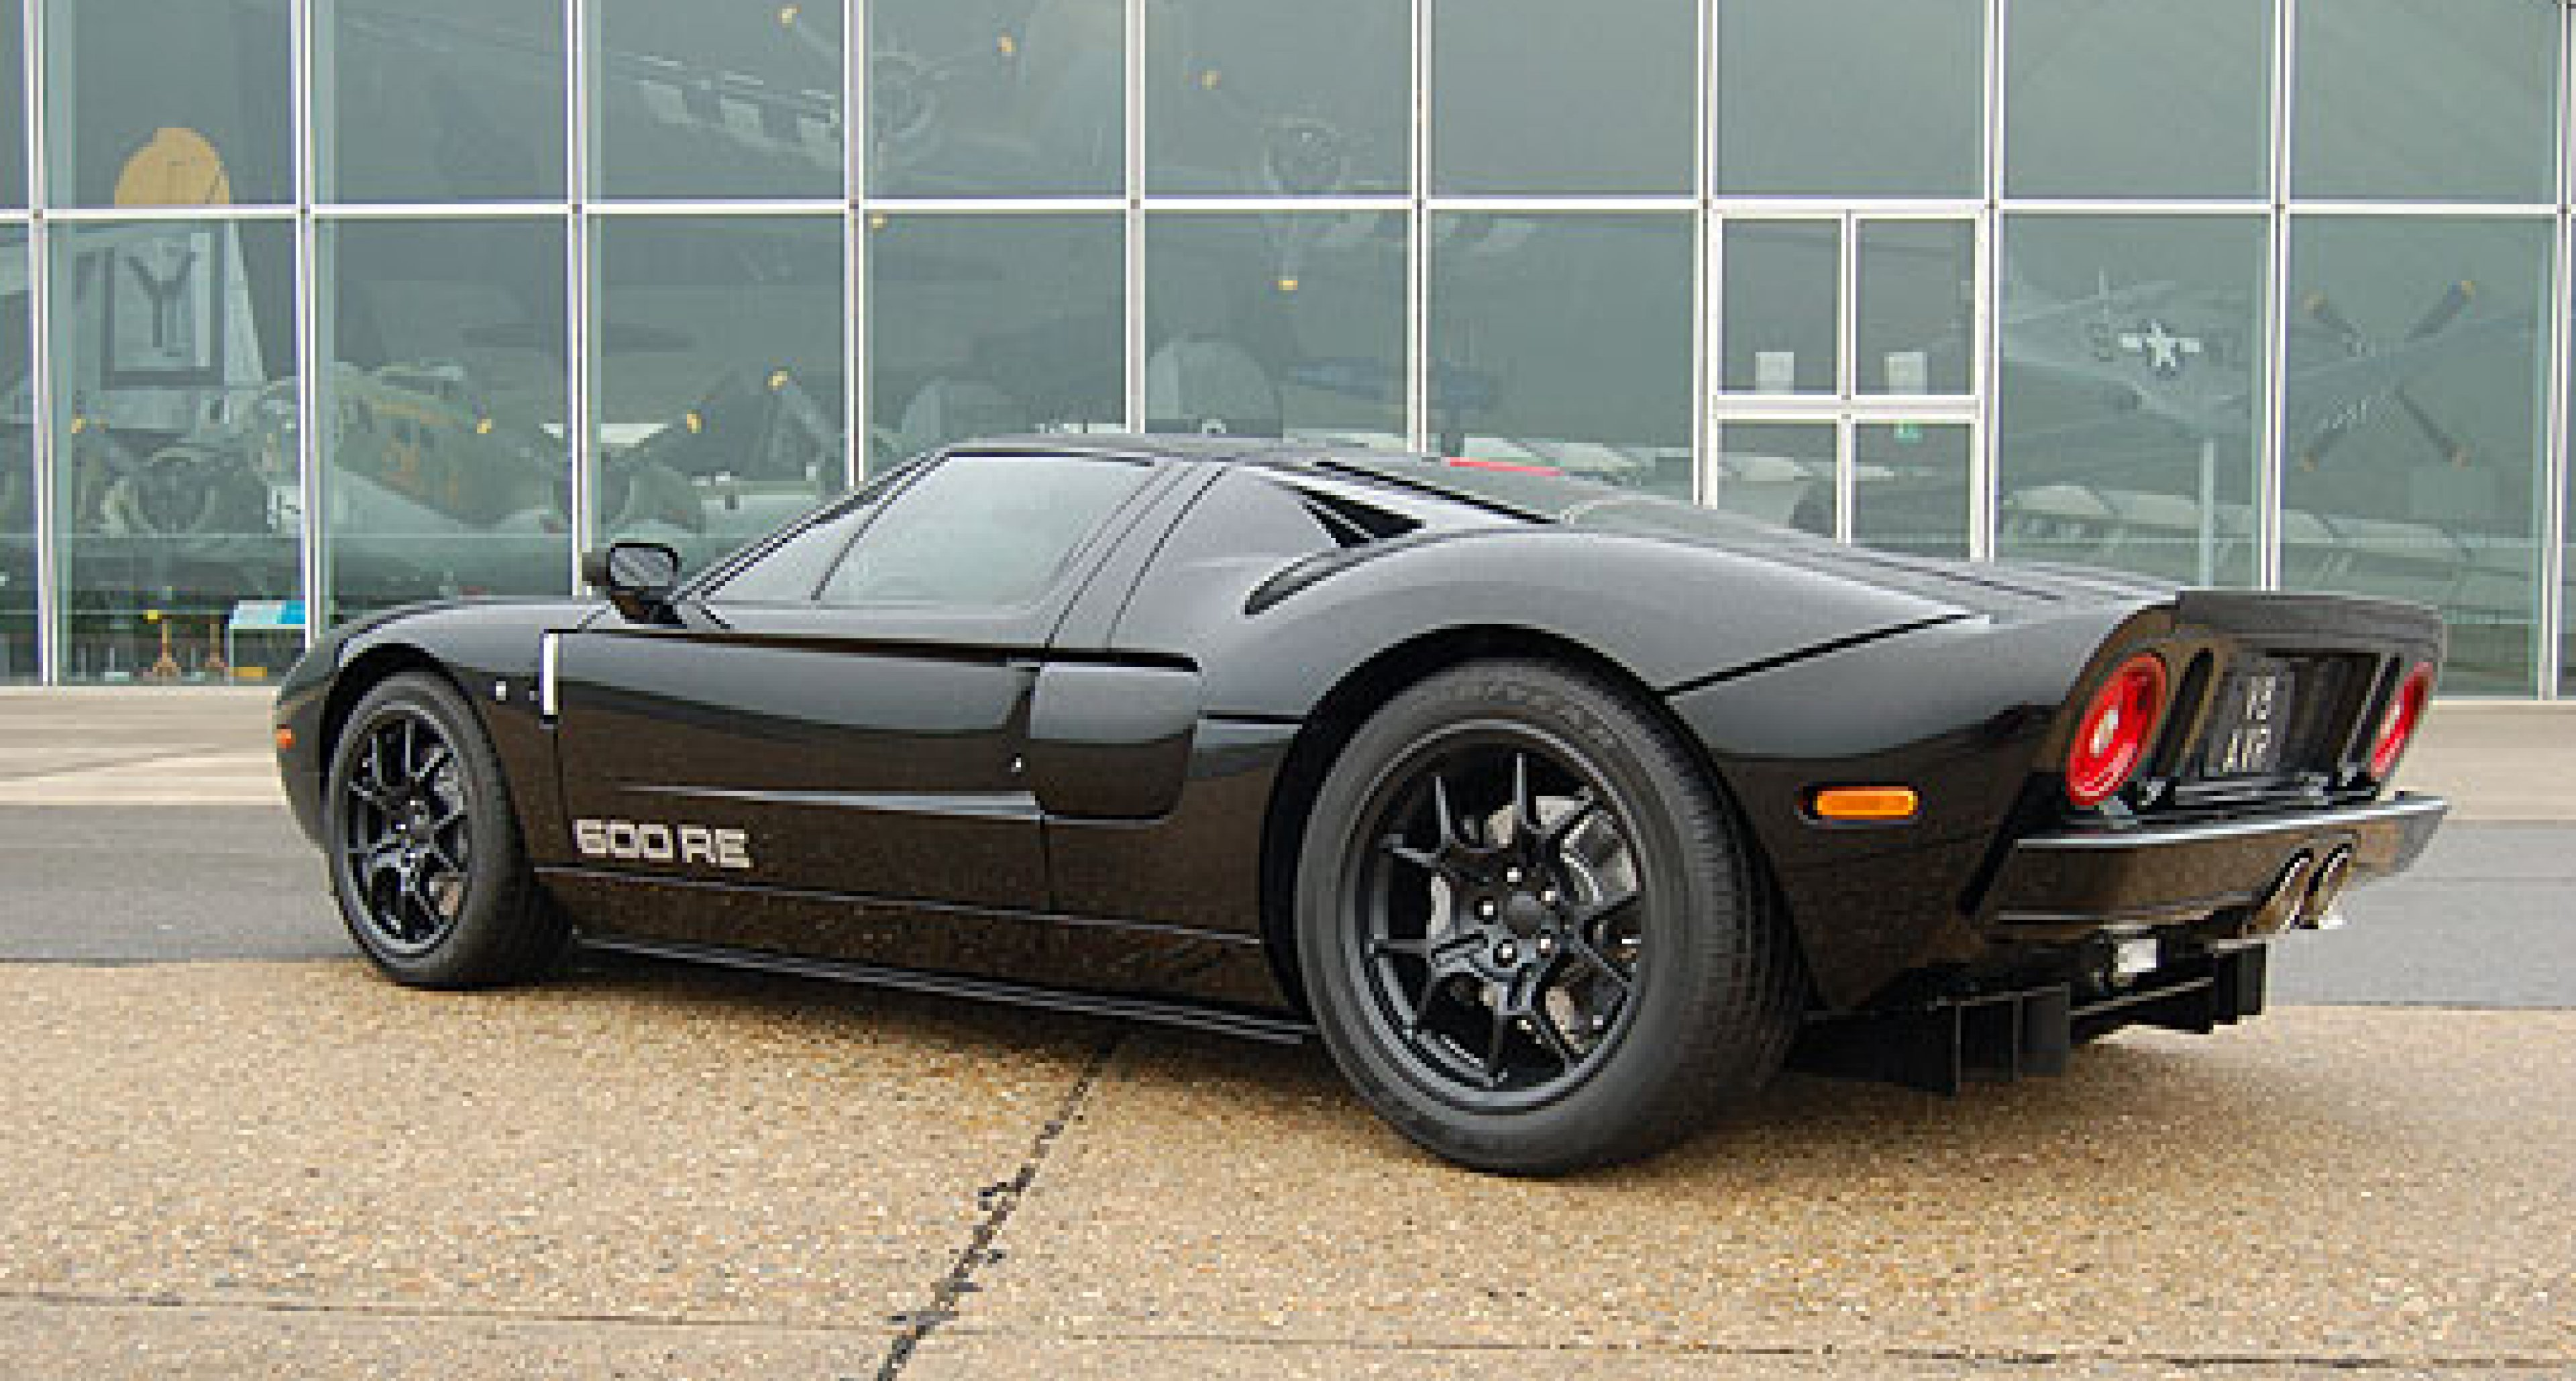 The Way To The Stars – The Ford GT 600RE